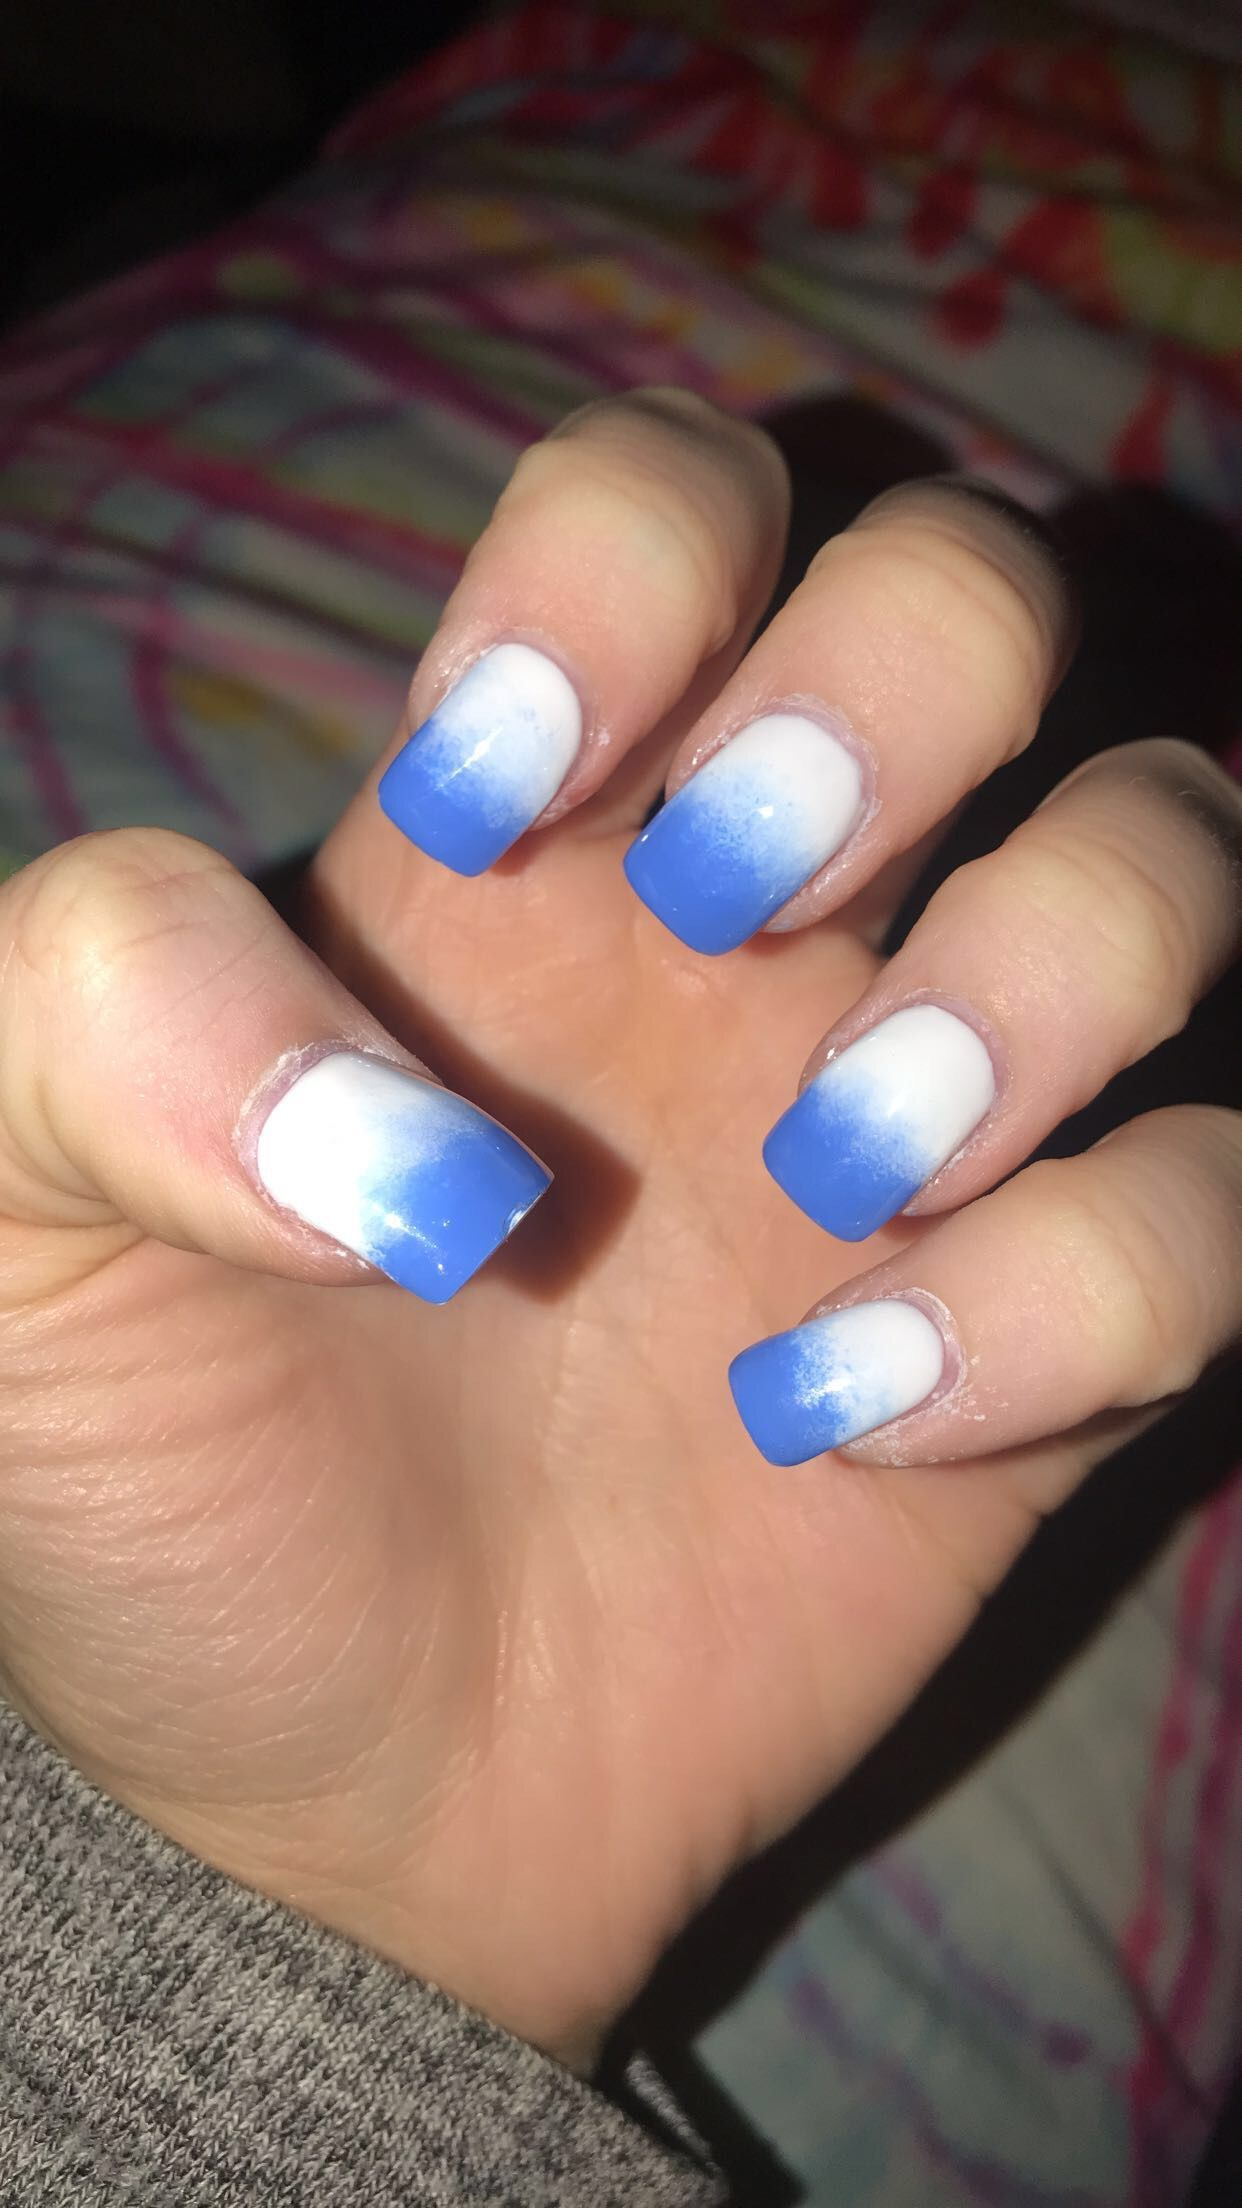 Got A White Blue Fade White Blue Ombre Nails Acrylics Vacationnails Soextra Happygirl Square Purple Manicure Acrylic Nails White Nails